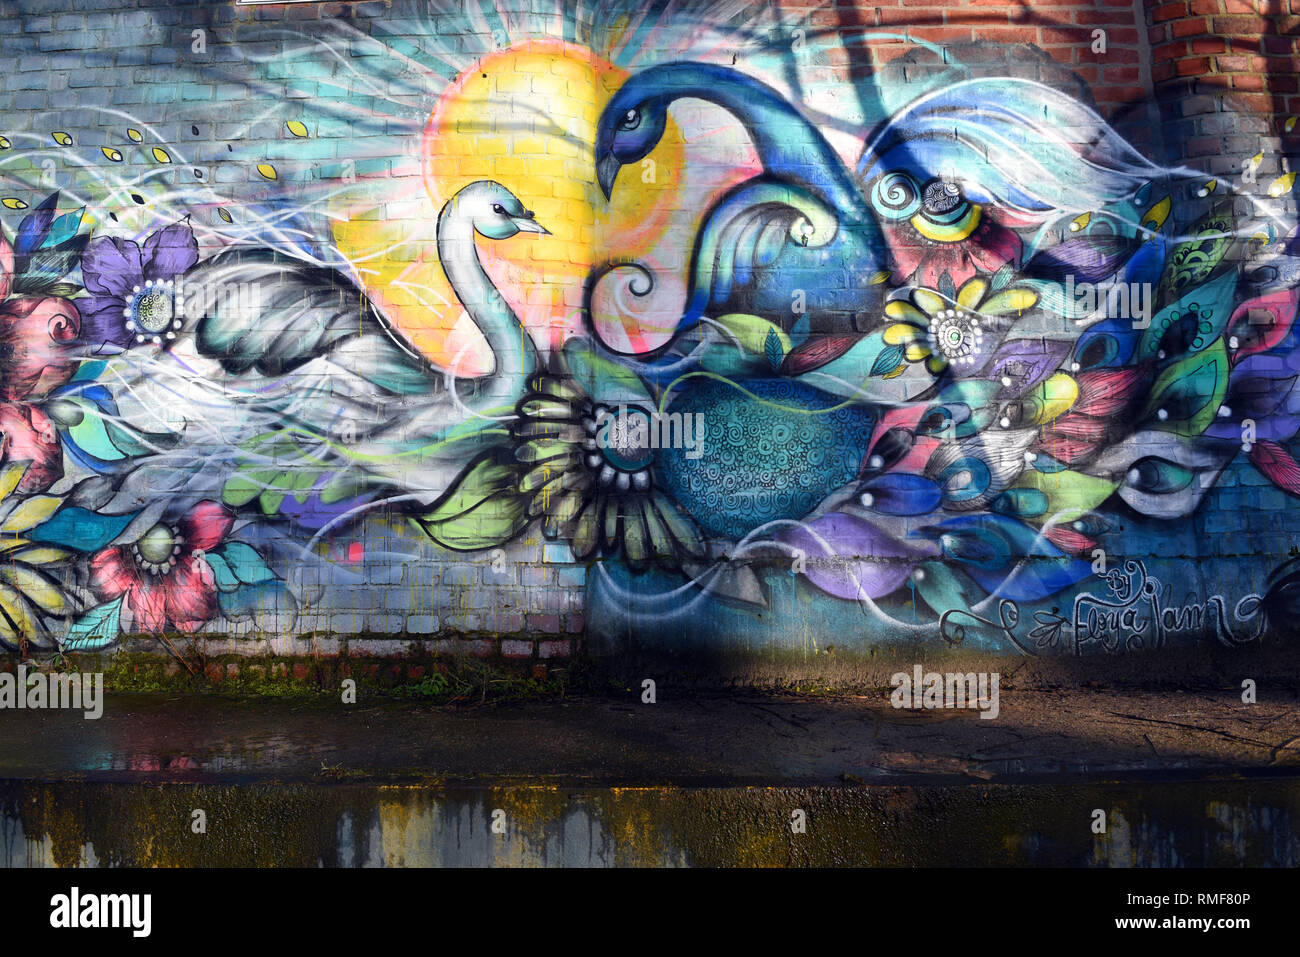 Krefeld, Germany. 11th Feb, 2019. 'Street Art Art' on the building of the 'Rhine Side Gallery' (partial view) on the banks of the Rhine in the district of Uerdingen, which was created by the street art artist 'Floya Jam' as part of the event 'Rhine Side Gallery 2018' of the city of Krefeld. Credit: Horst Ossinger/dpa/Alamy Live News - Stock Image